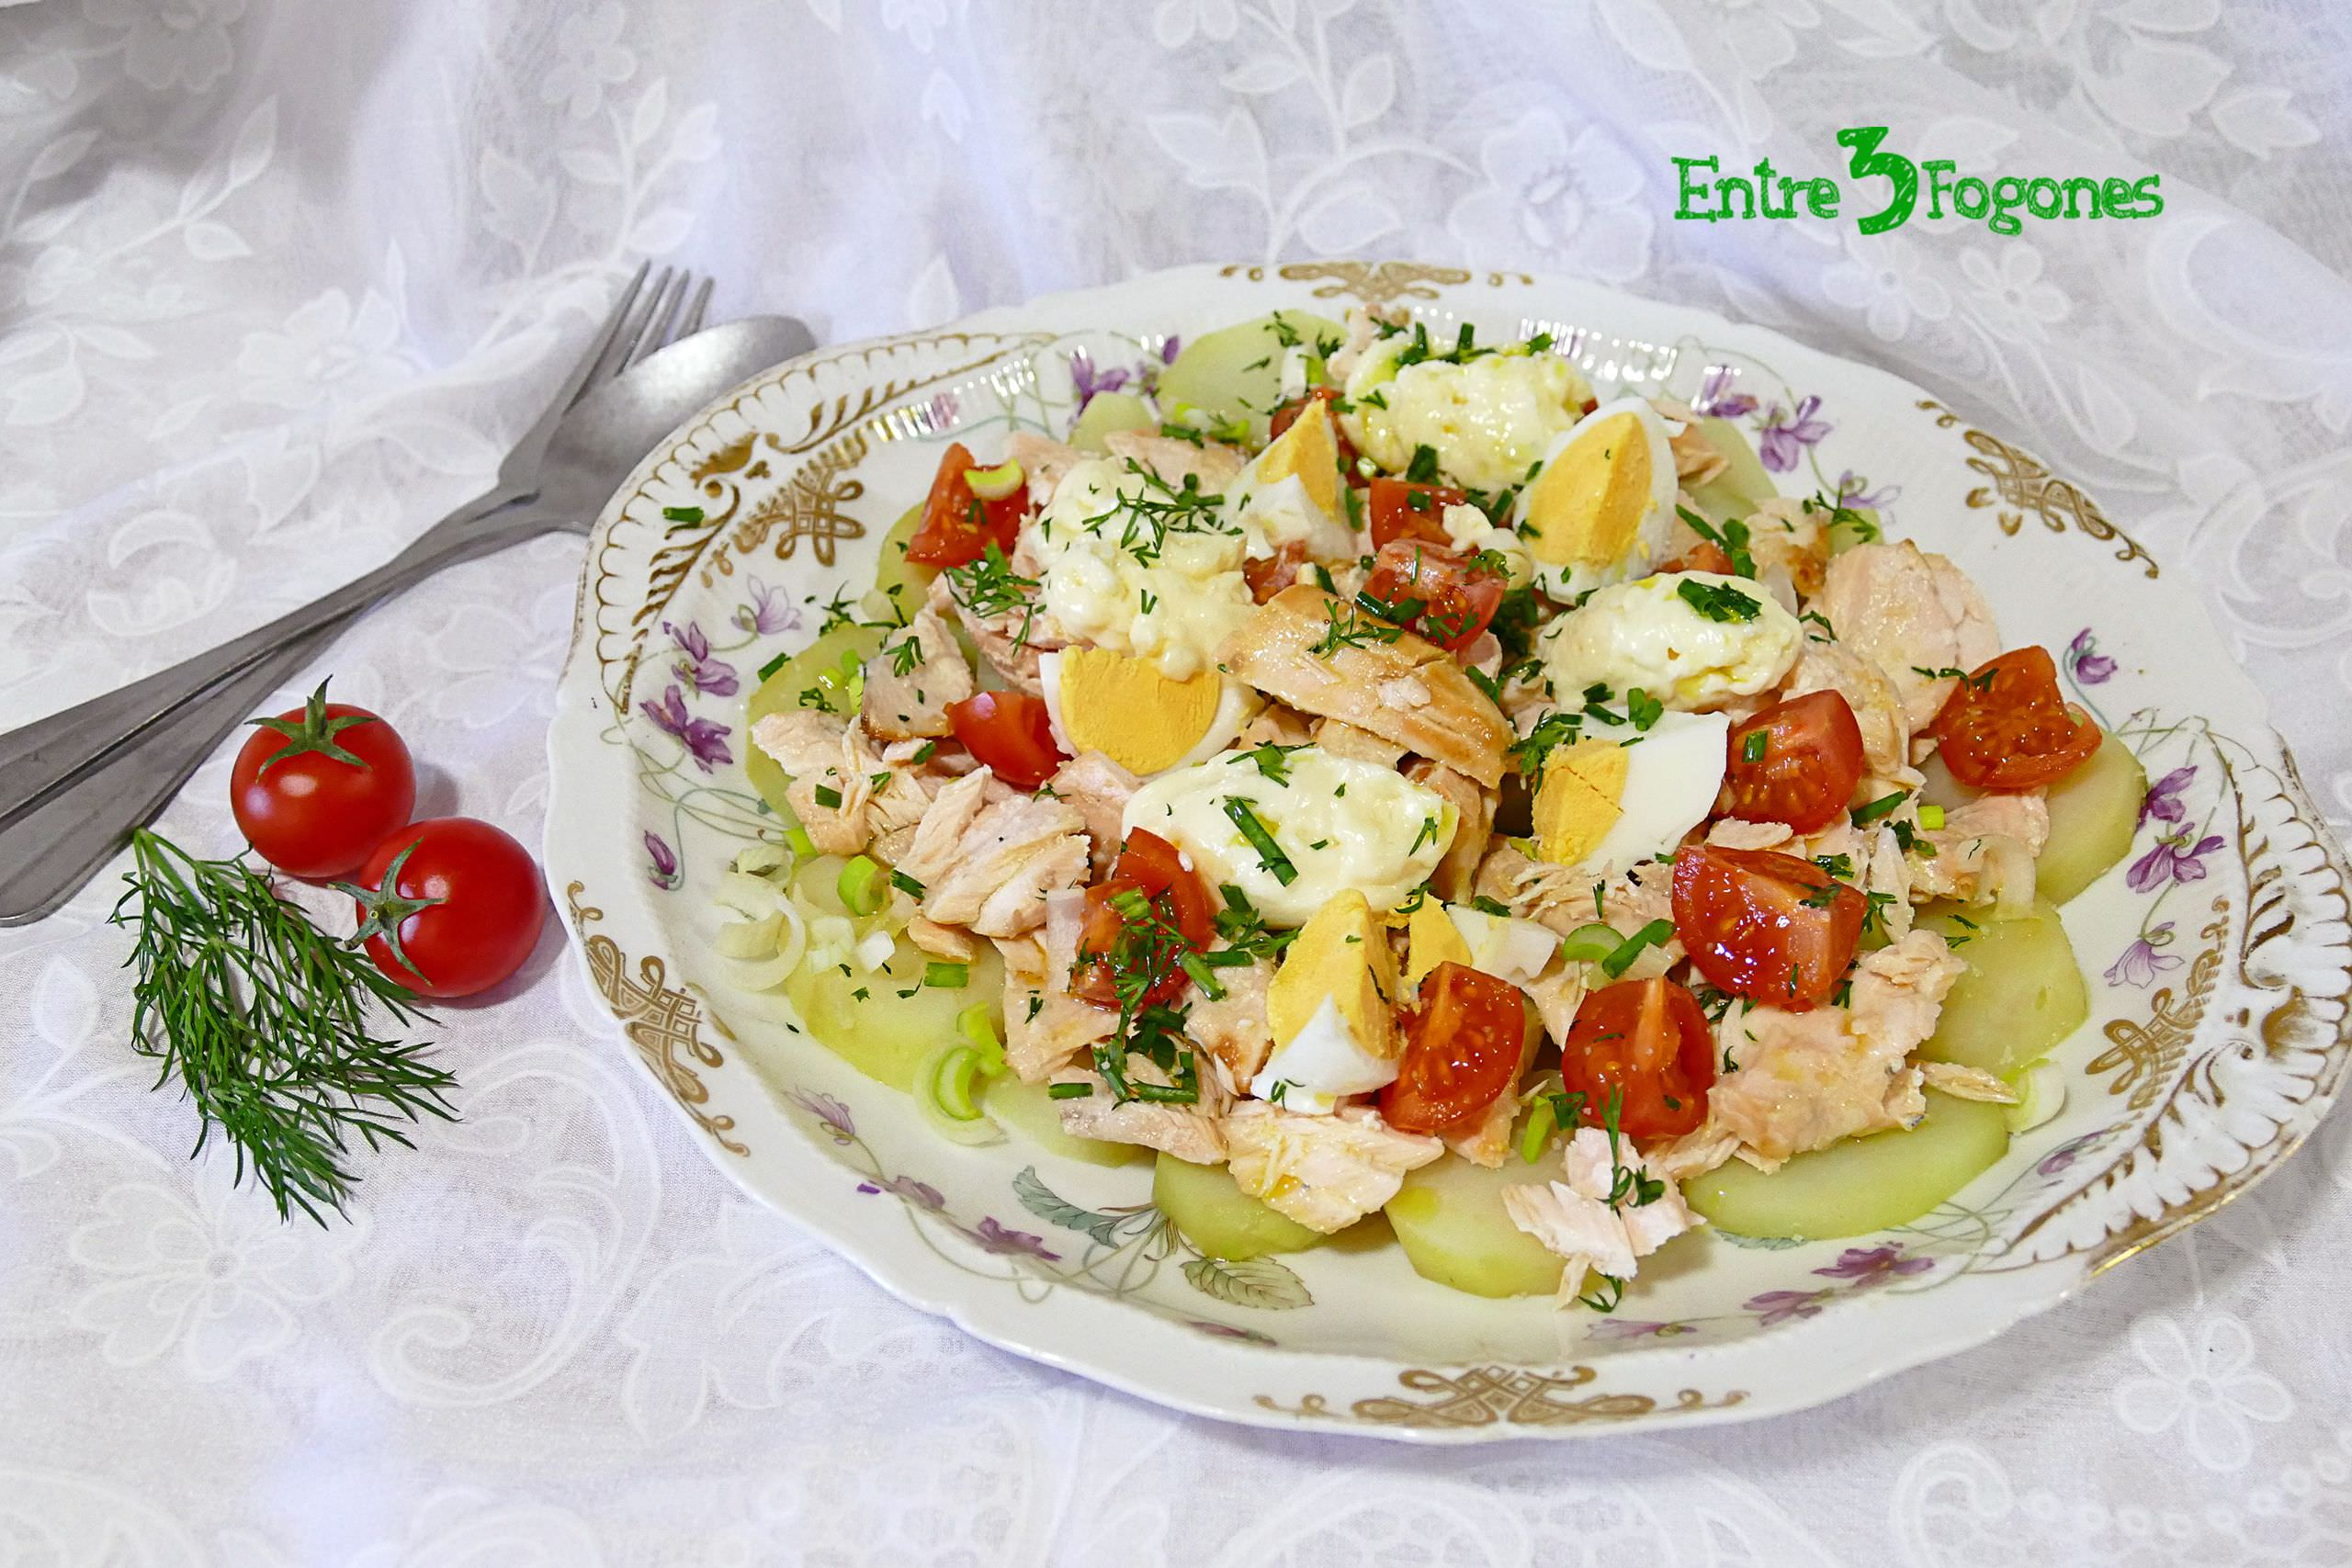 Photo of Ensalada de Patata con Salmón